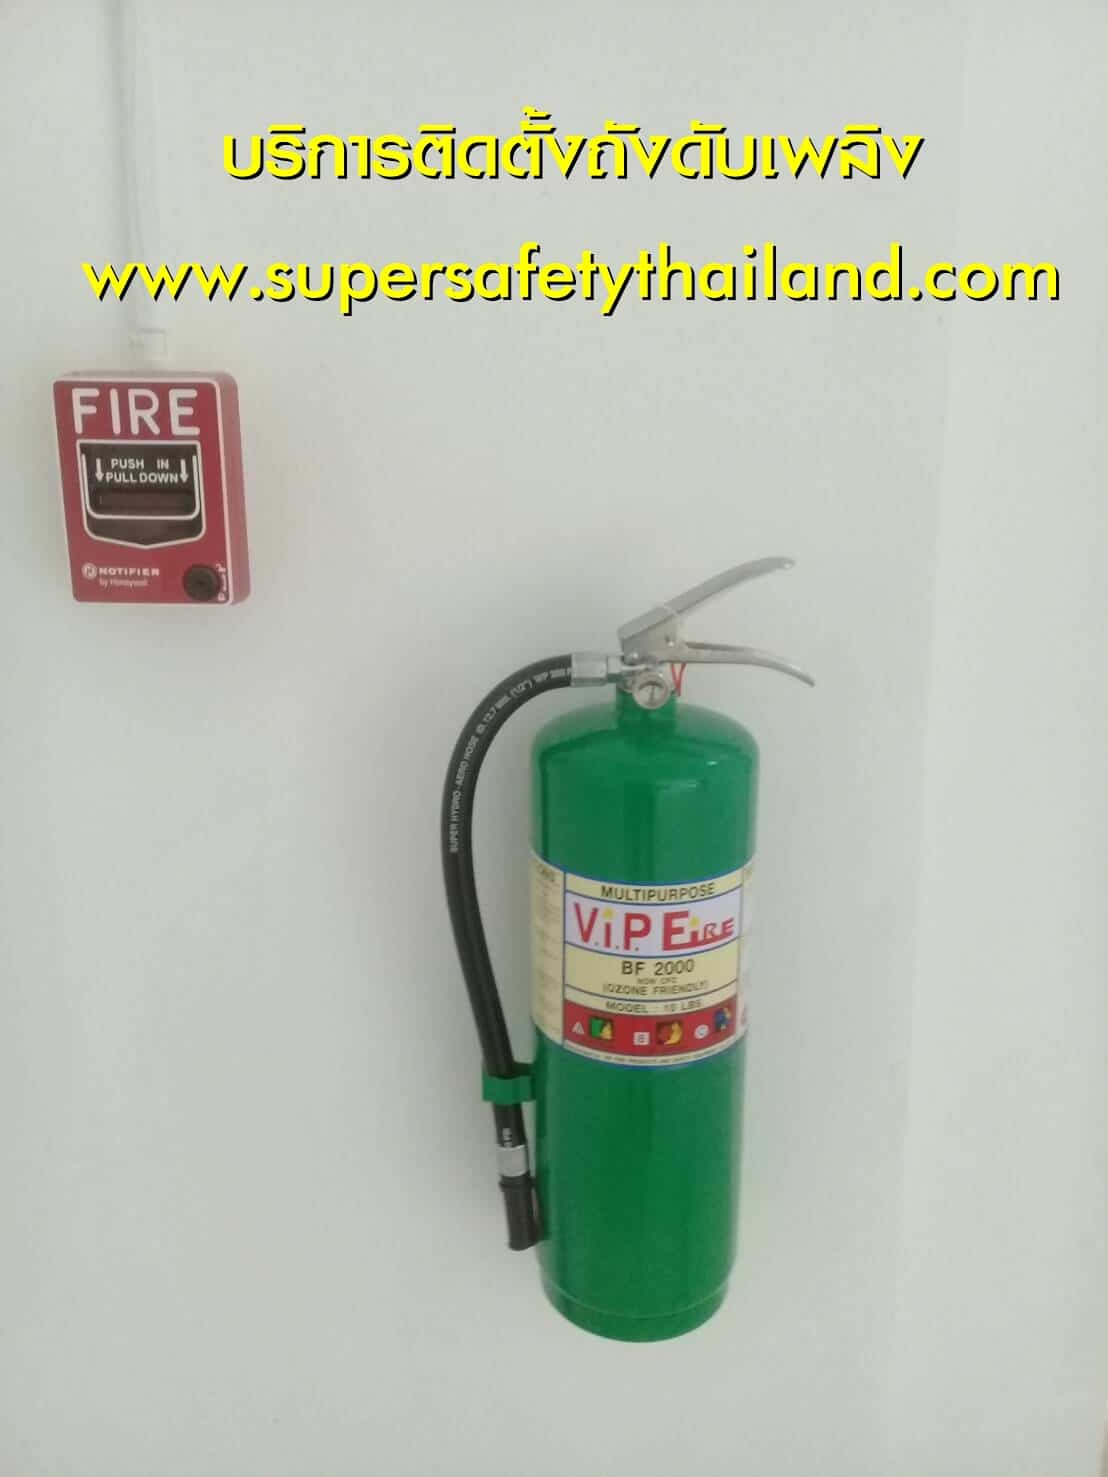 http://www.supersafetythailand.com/wp-content/uploads/2018/11/%E0%B8%9A%E0%B8%A3%E0%B8%B4%E0%B8%81%E0%B8%B2%E0%B8%A3%E0%B8%95%E0%B8%B4%E0%B8%94%E0%B8%95%E0%B8%B1%E0%B9%89%E0%B8%87%E0%B8%96%E0%B8%B1%E0%B8%87%E0%B8%94%E0%B8%B1%E0%B8%9A%E0%B9%80%E0%B8%9E%E0%B8%A5%E0%B8%B4%E0%B8%87-5.jpg